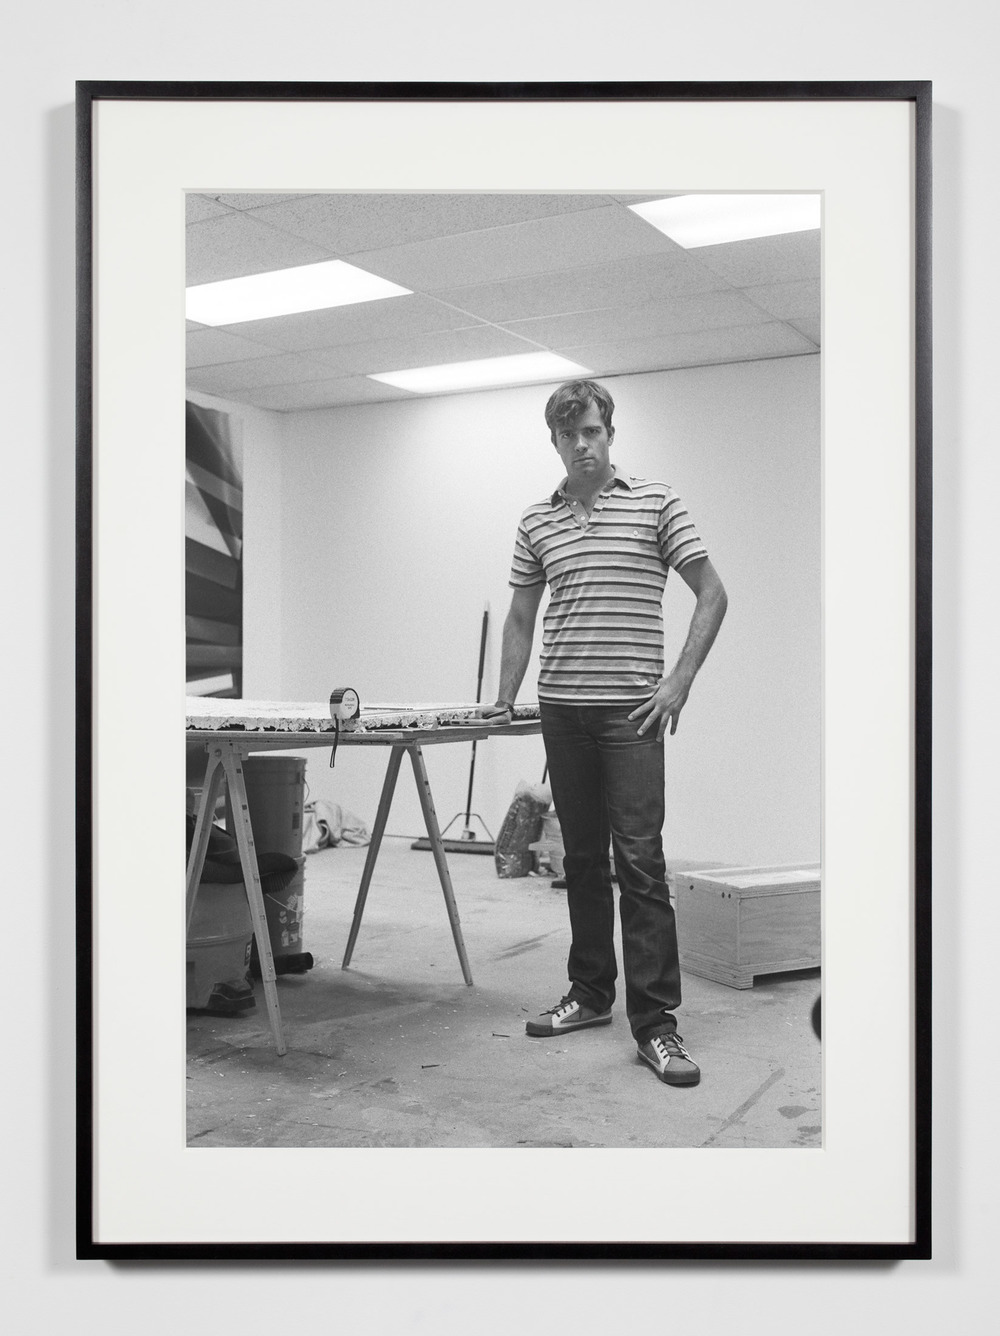 Studio Assistant, Los Angeles, California, September 15, 2009    2011   Epson Ultrachrome K3 archival ink jet print on Hahnemühle Photo Rag paper  36 3/8 x 26 3/8 inches   Industrial Portraits, 2008–